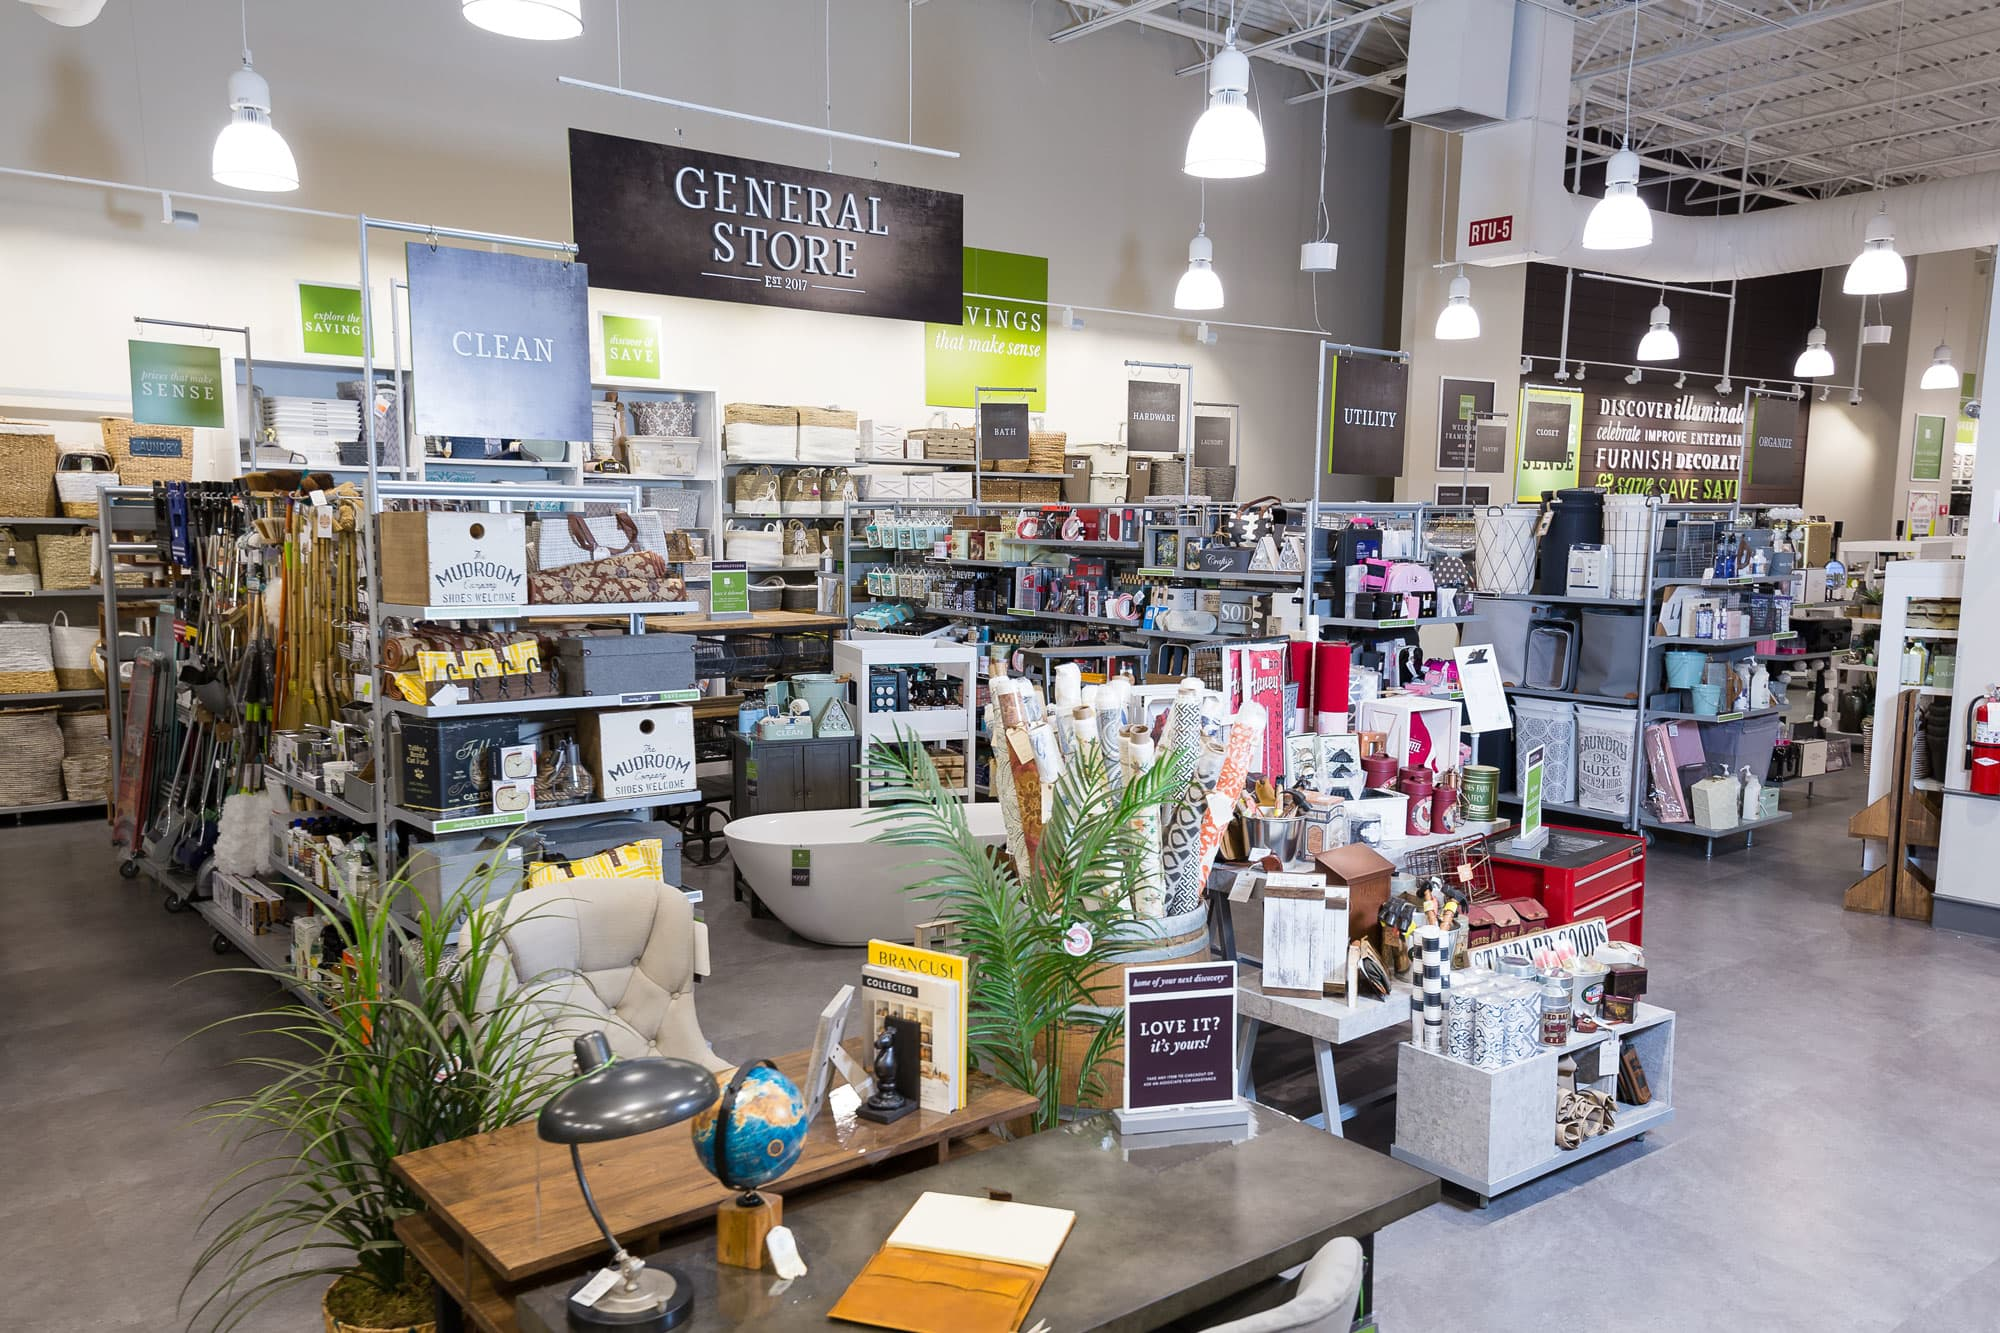 TJX the owner of HomeGoods just opened its first Homesense